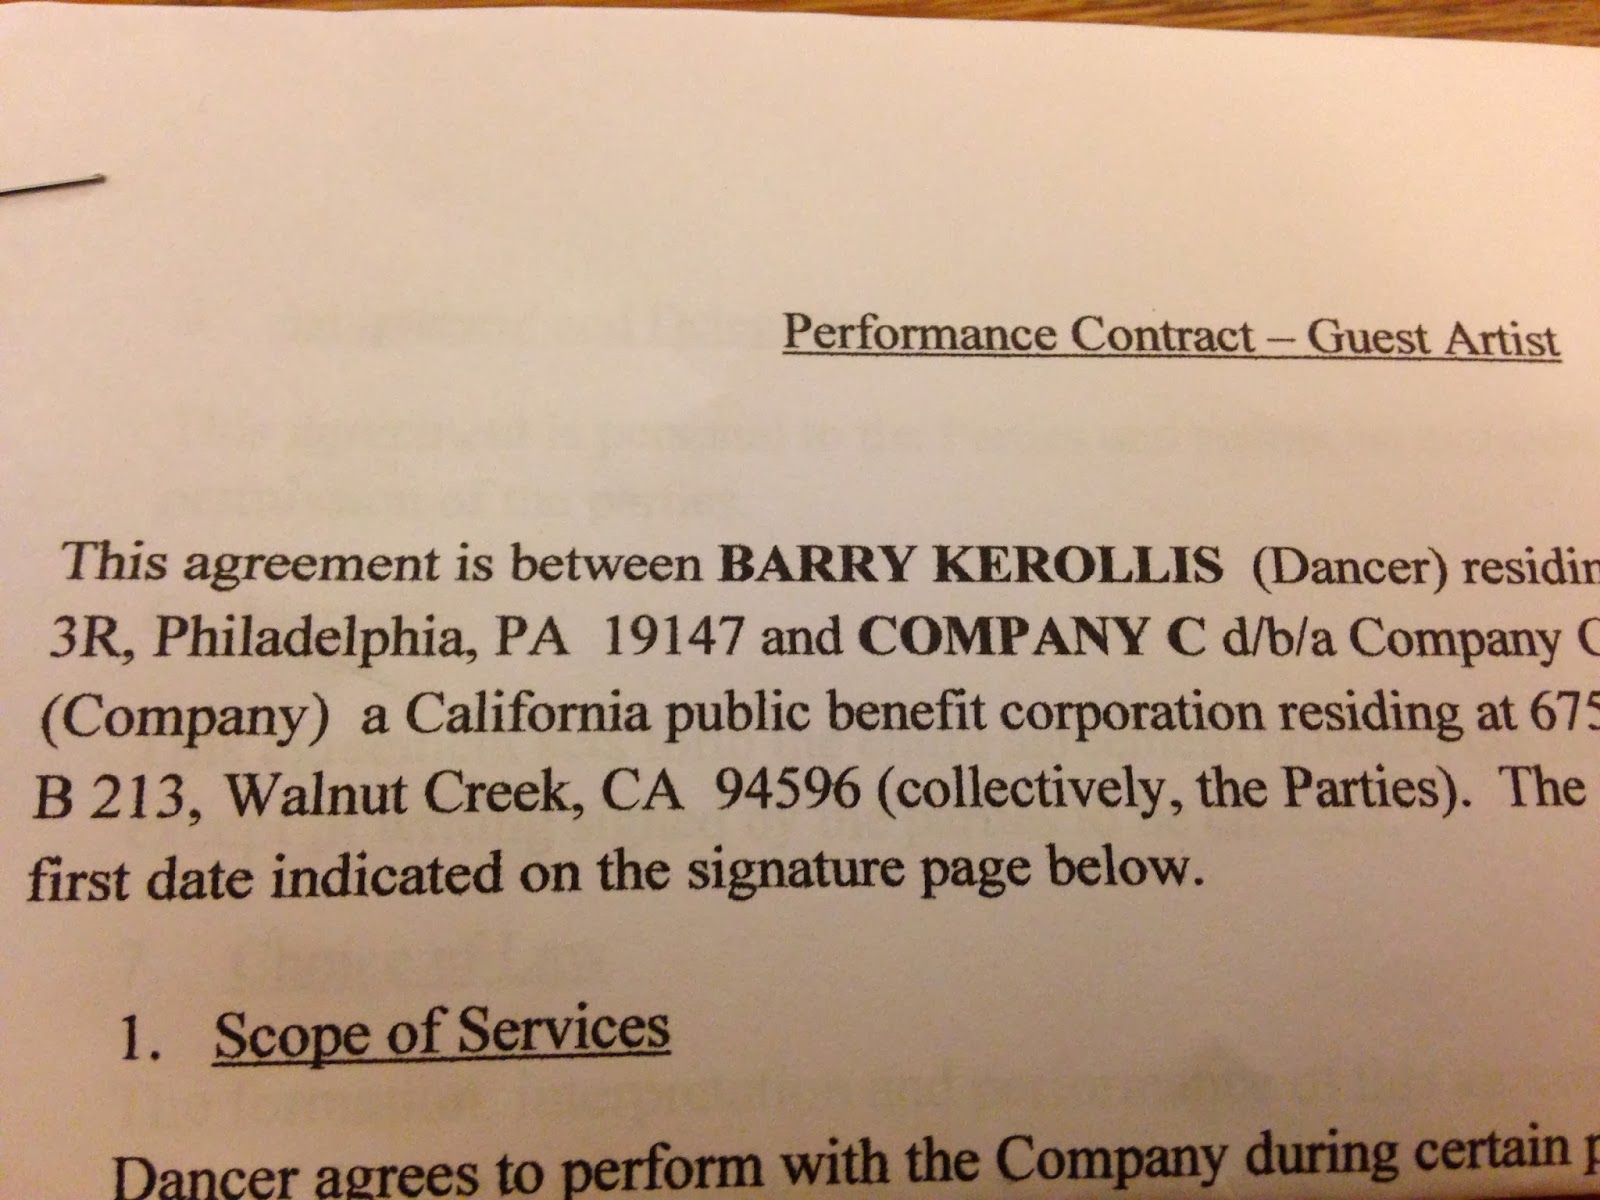 life of a lance dancer contract talk important items to  contract talk important items to have in writing